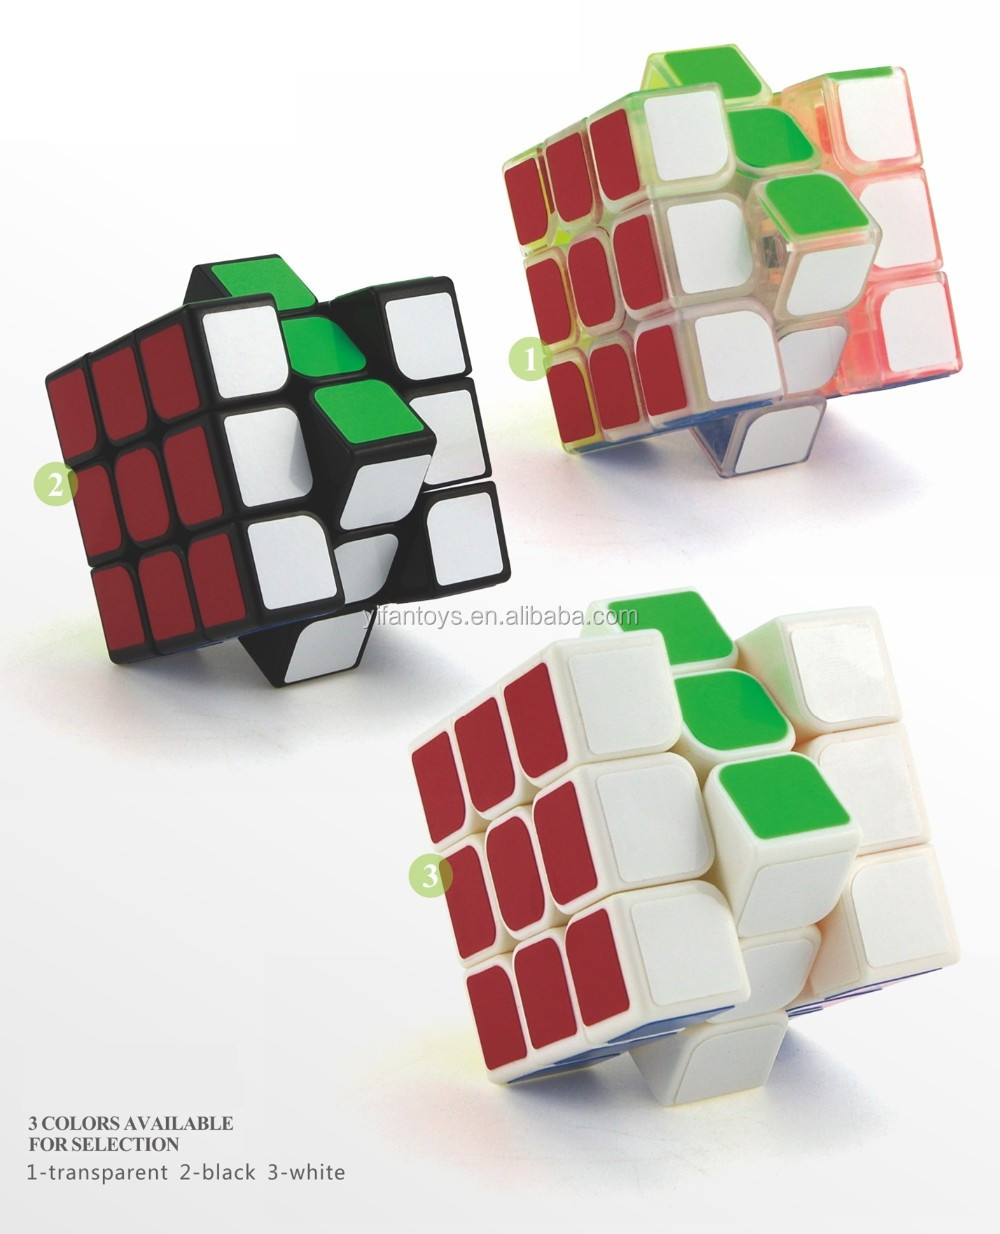 Wholesale Yongjun Educational Cube Yj8614 Guanlong 3x3 Magic Cubes ...